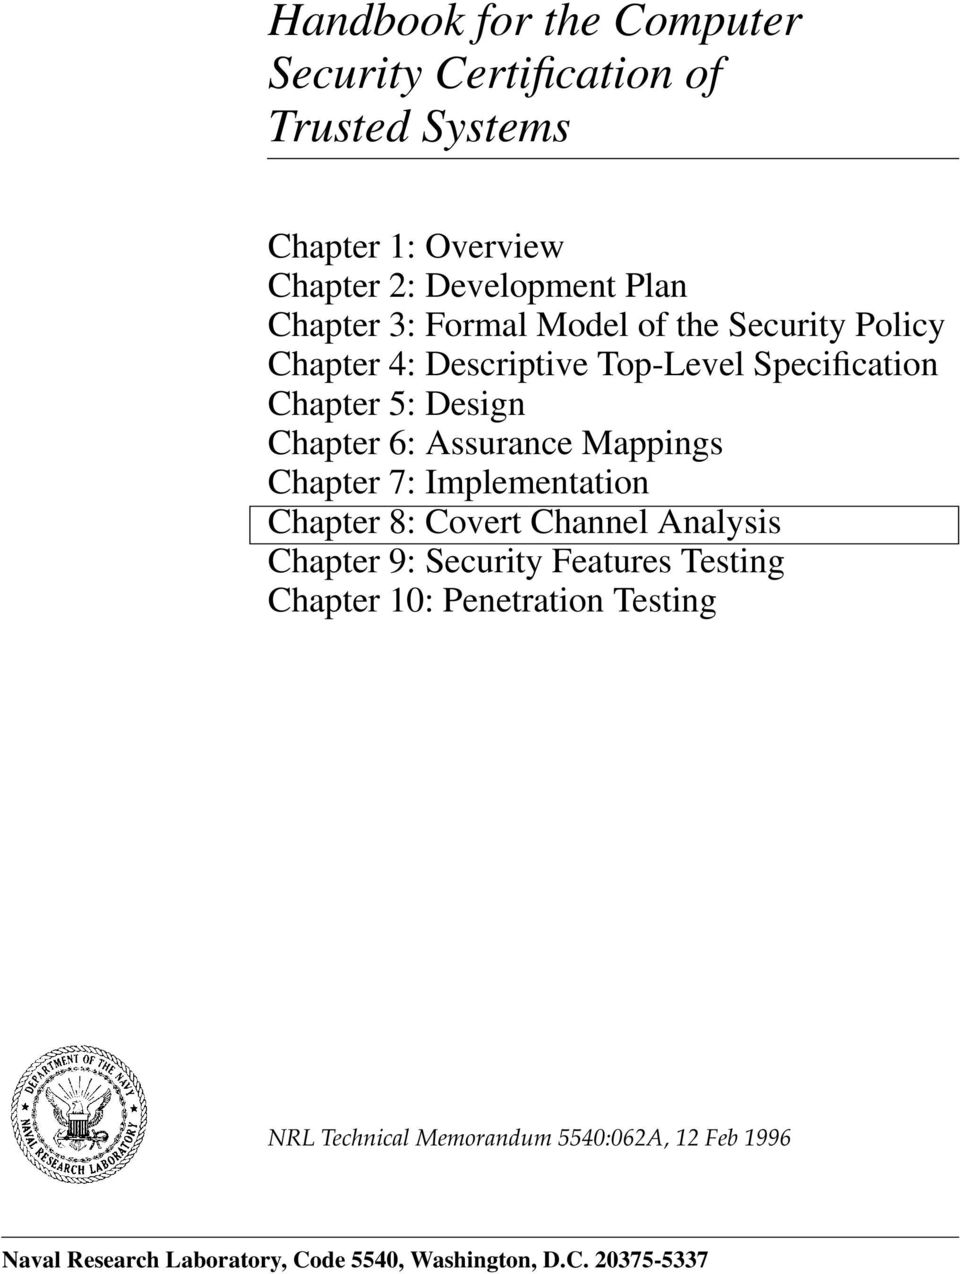 Mappings Chapter 7: Implementation Chapter 8: Covert Channel Analysis Chapter 9: Security Features Testing Chapter 10: